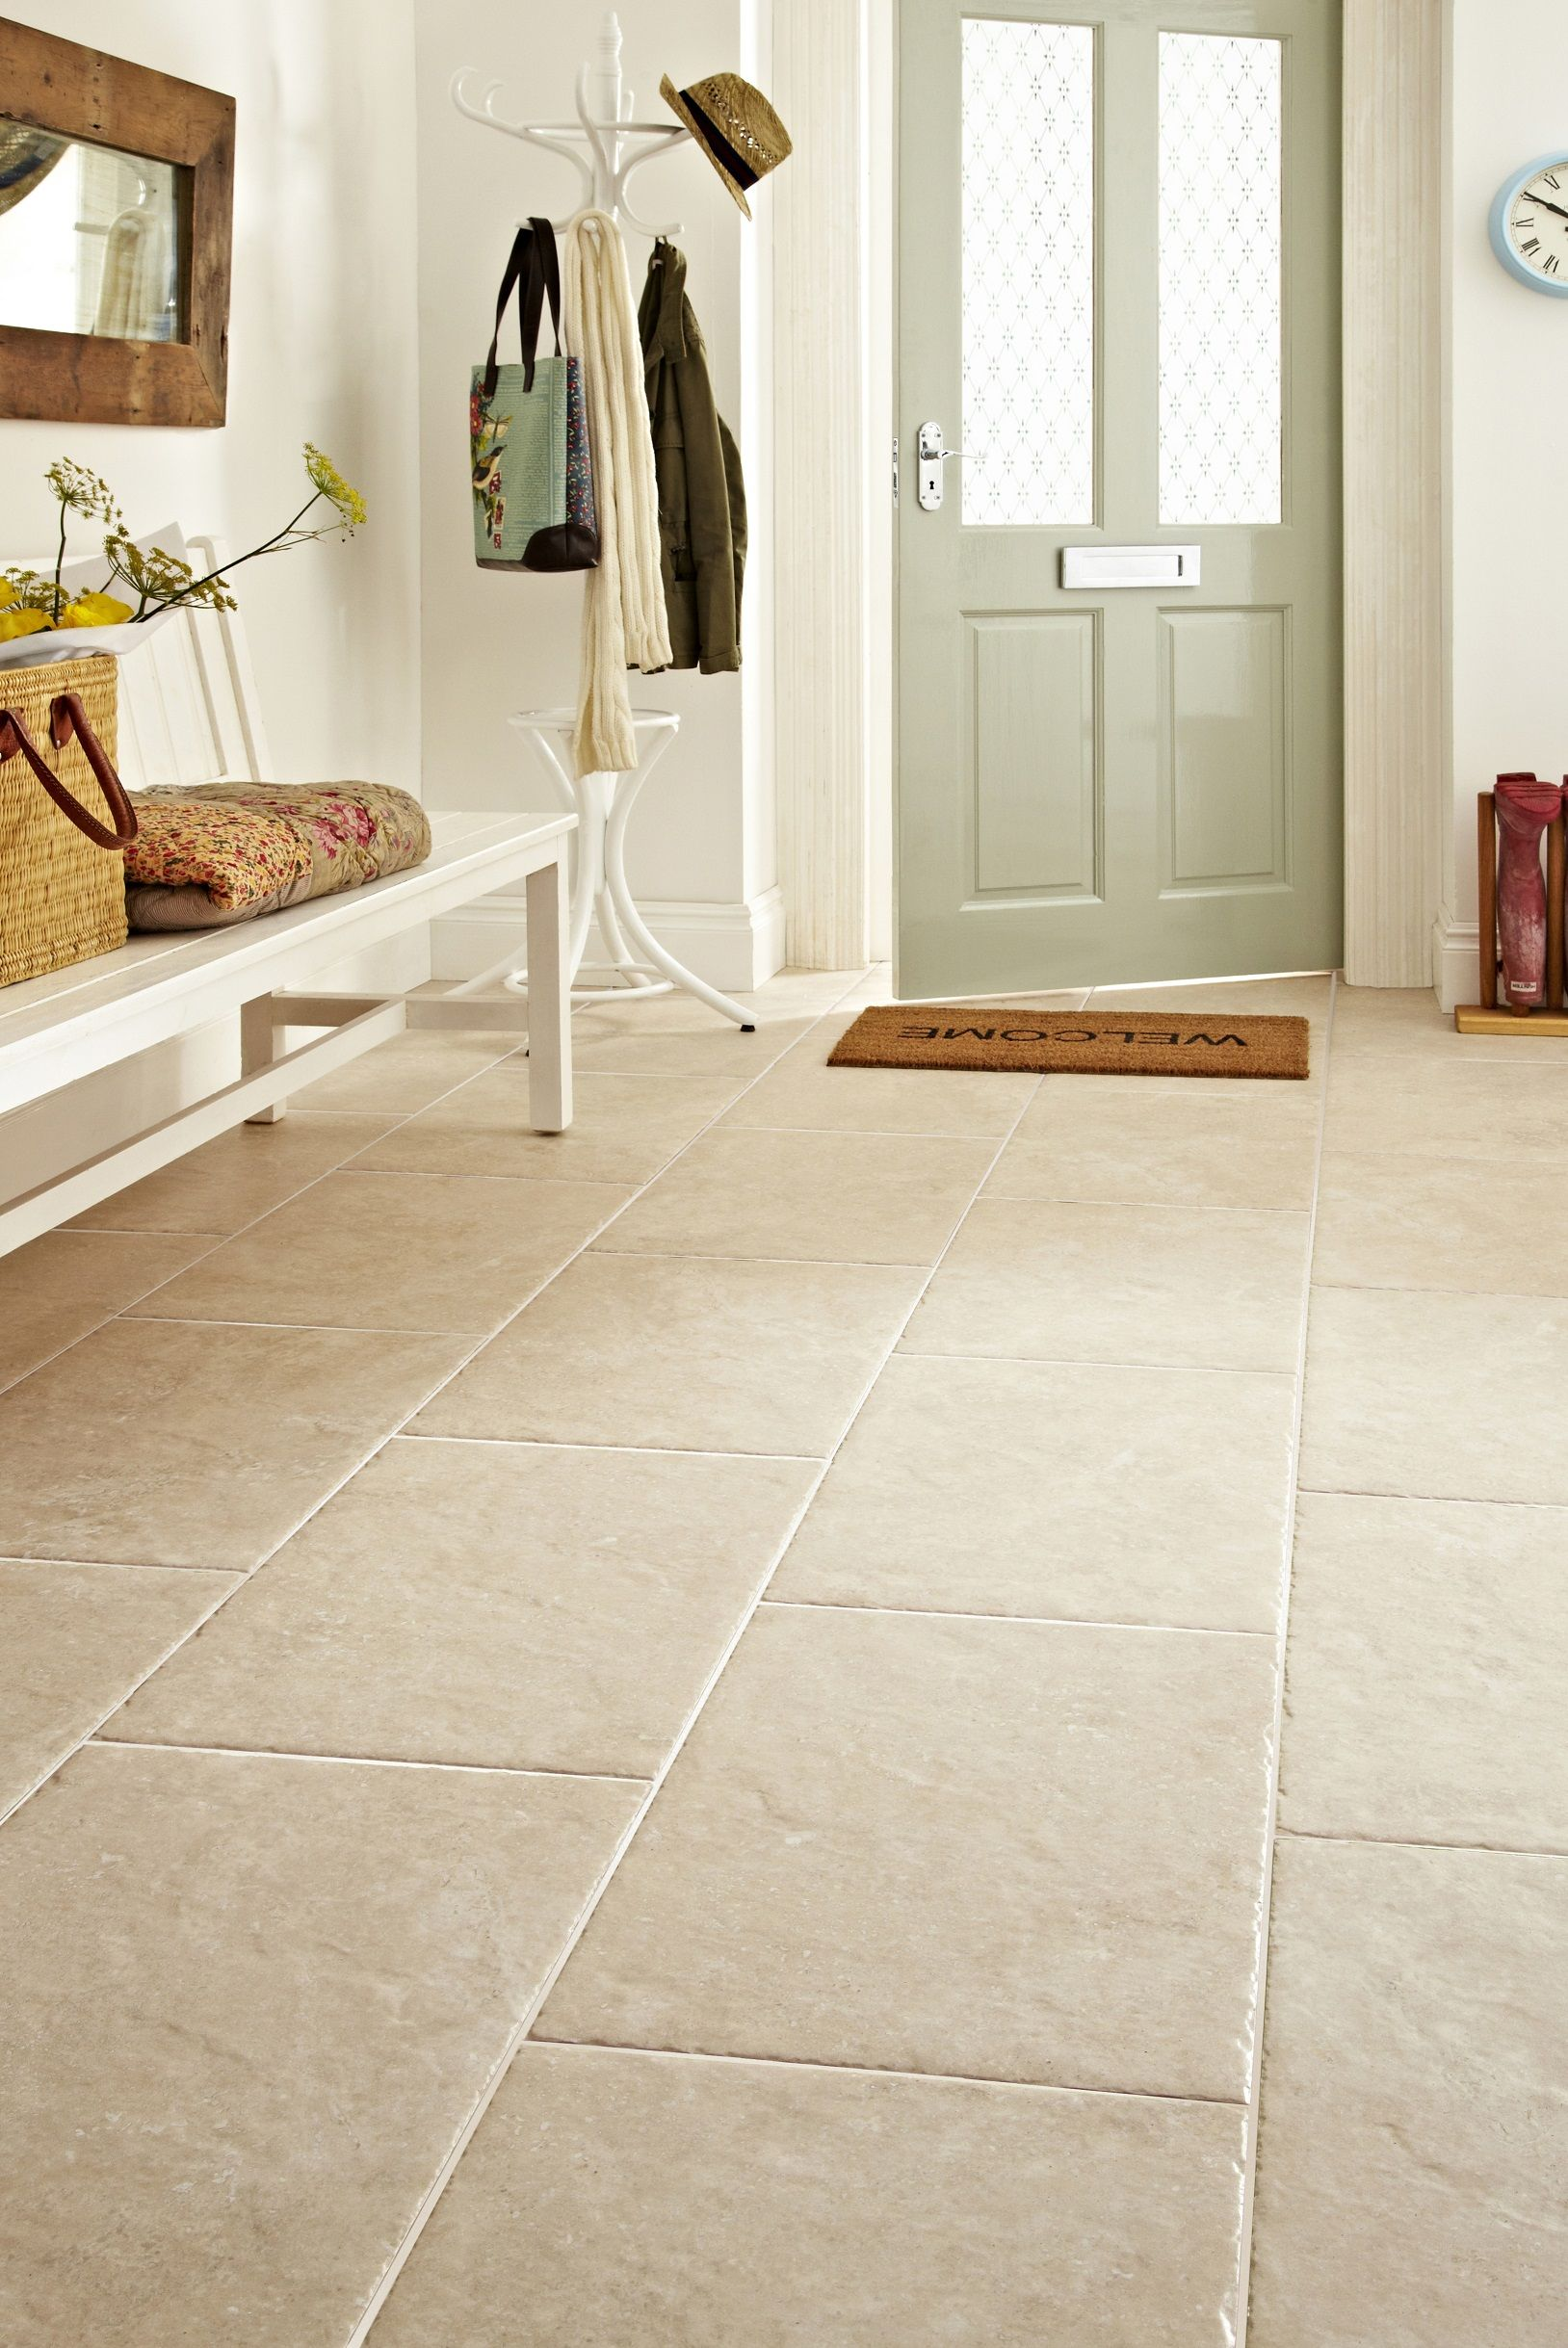 Uncategorized Tiles For The Floor devon bone from topps tiles potential for the dining room floor floor